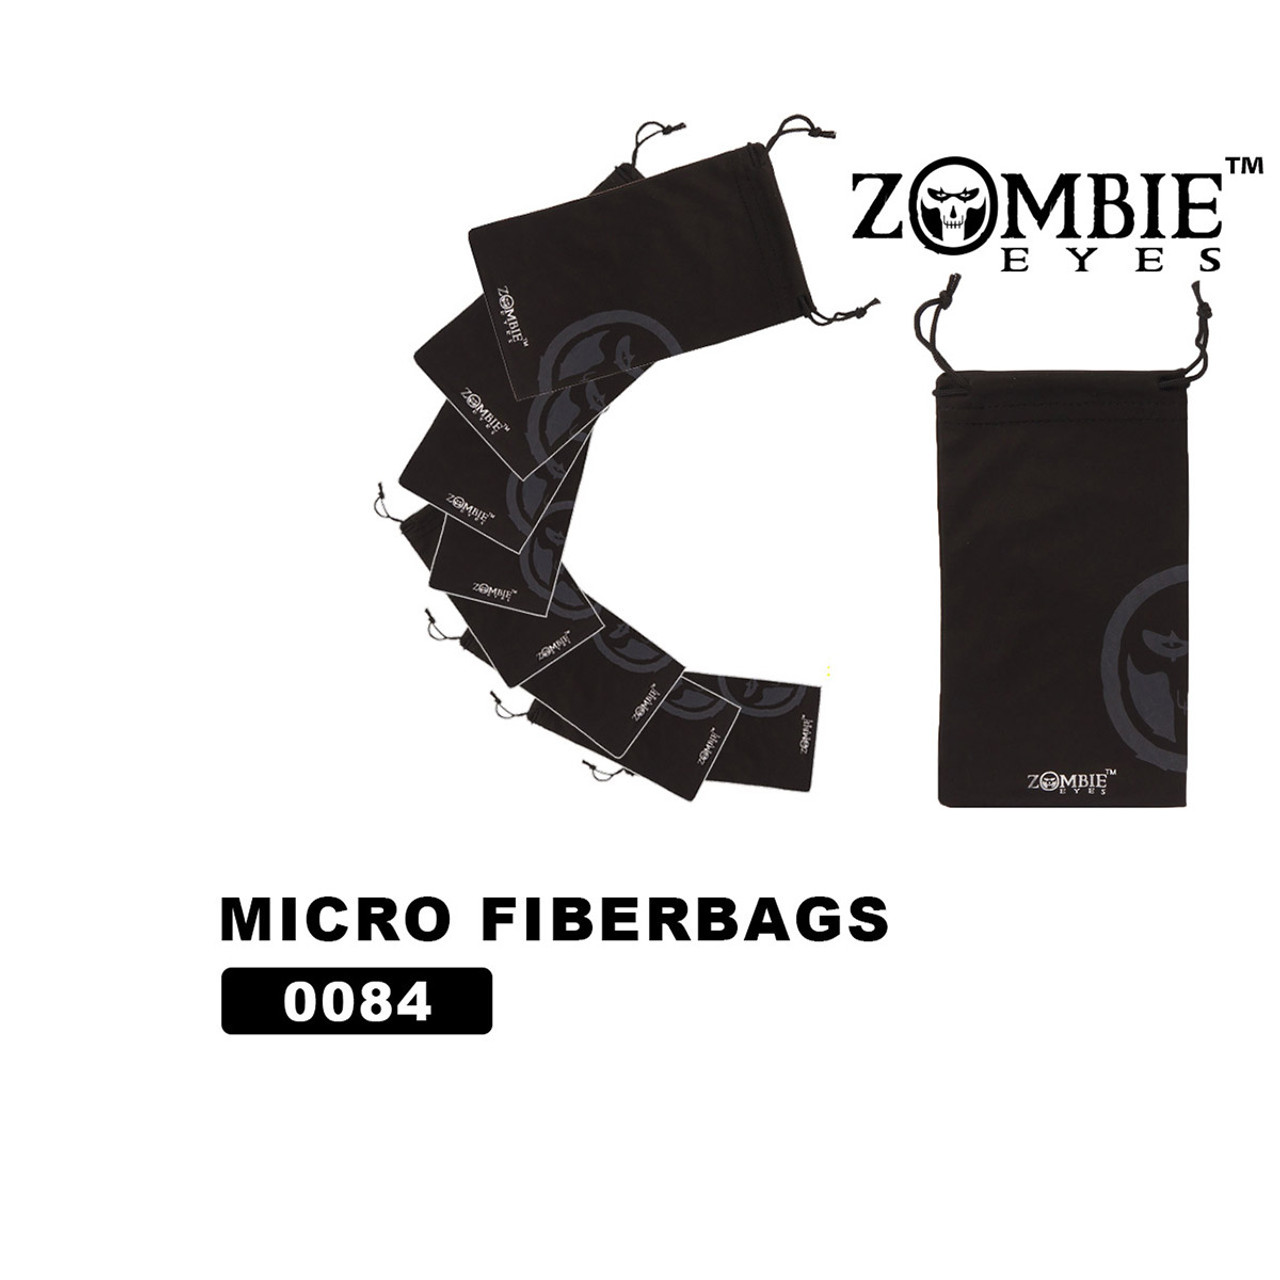 Zombie Eyes™ Wholesale Microfiber Bags - #0084 (12 pcs.)